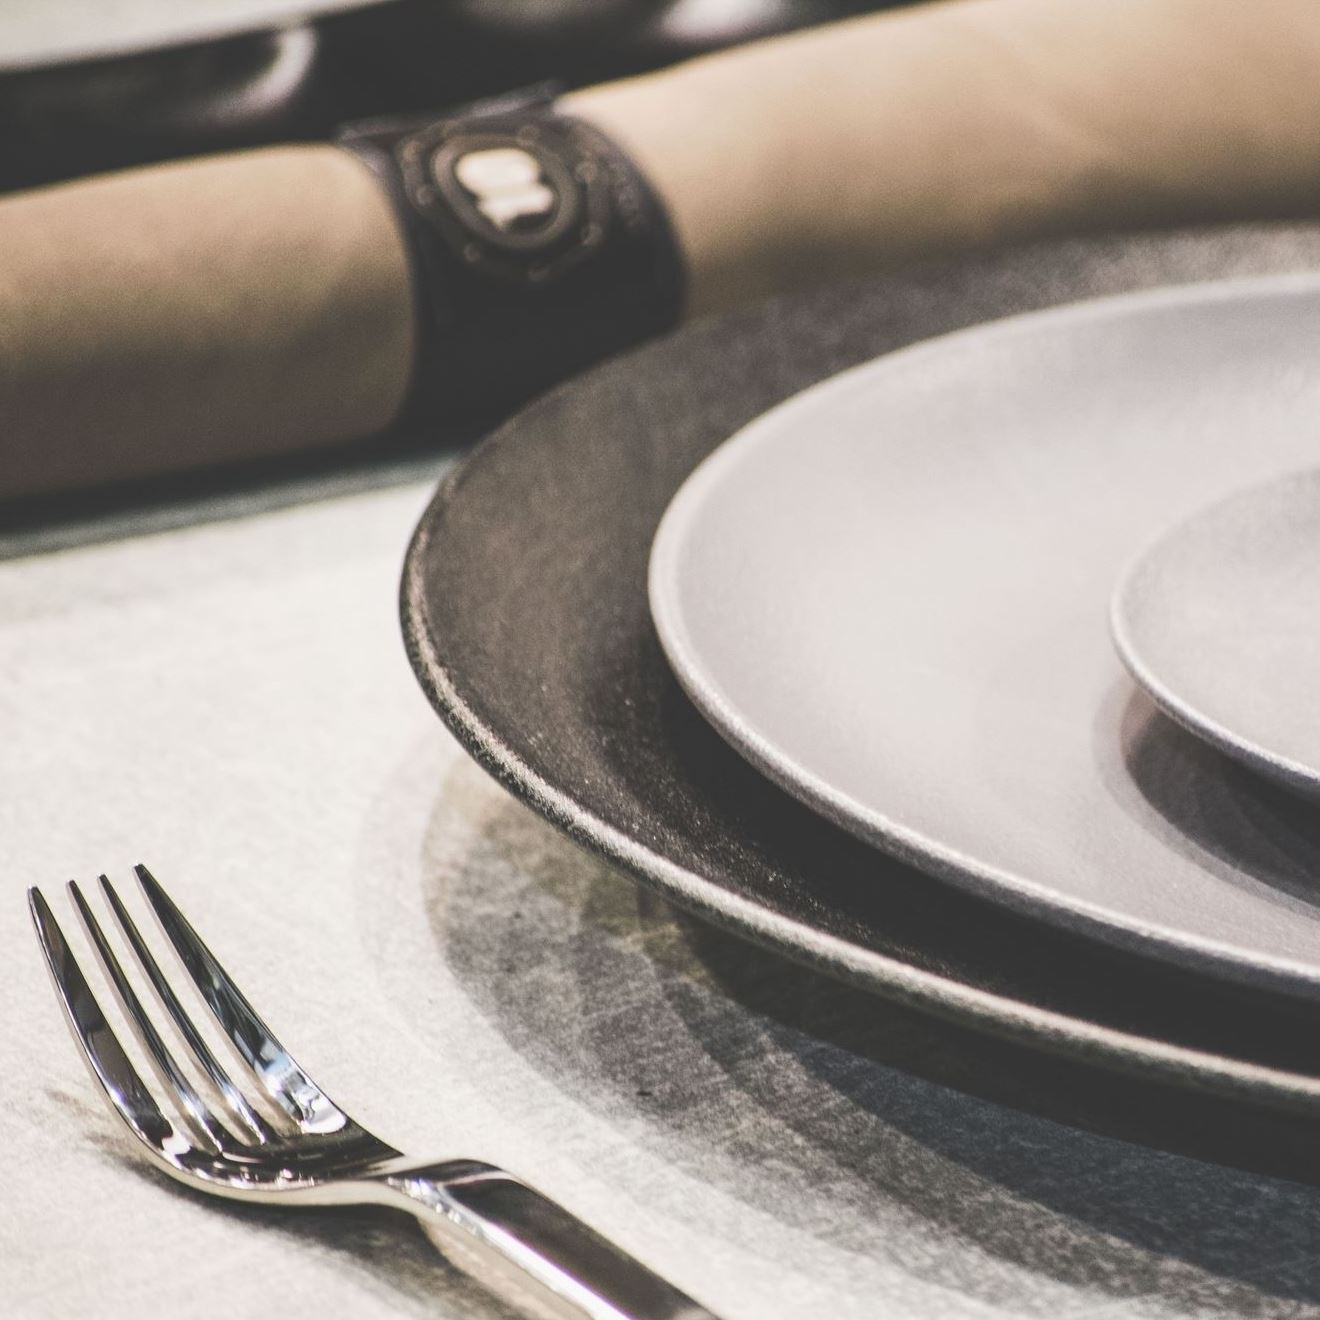 A closeup picture of three plates next to a fork.